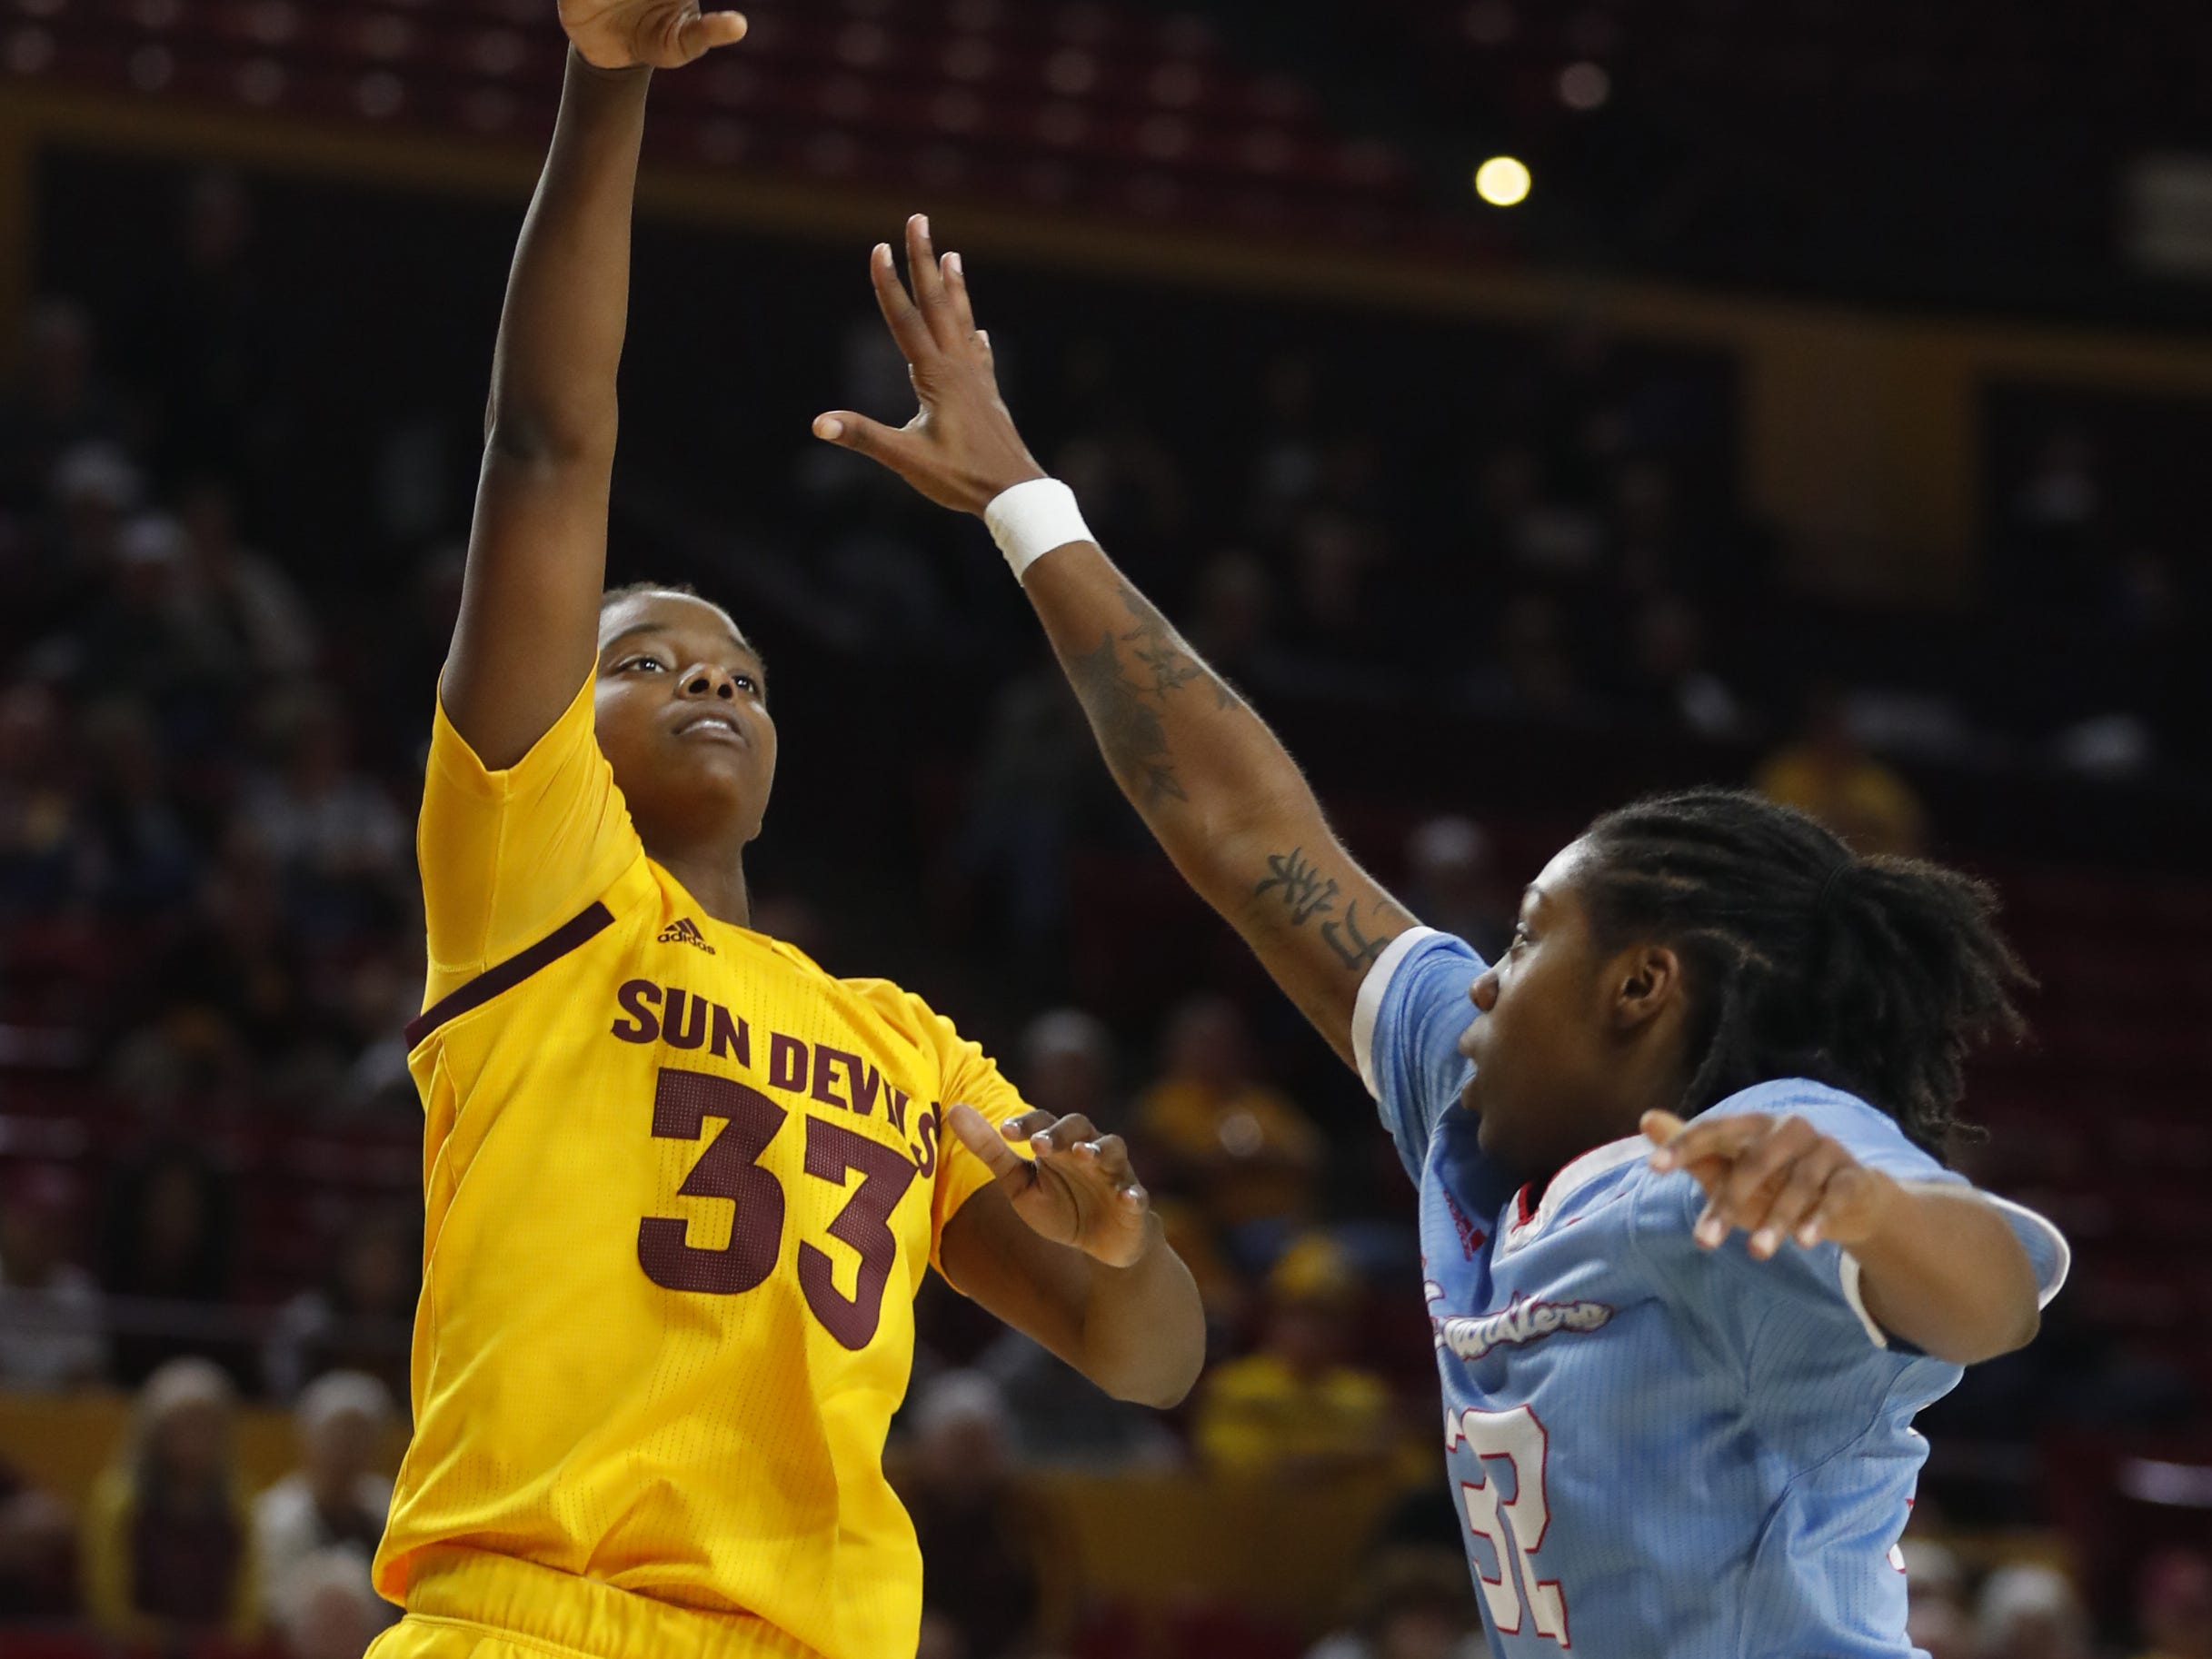 ASU's Charnea Johnson-Chapman (33) scores over Louisiana Tech's Zhanae Whitney (32) during the second half at Wells Fargo Arena in Tempe, Ariz. on November 30, 2018.